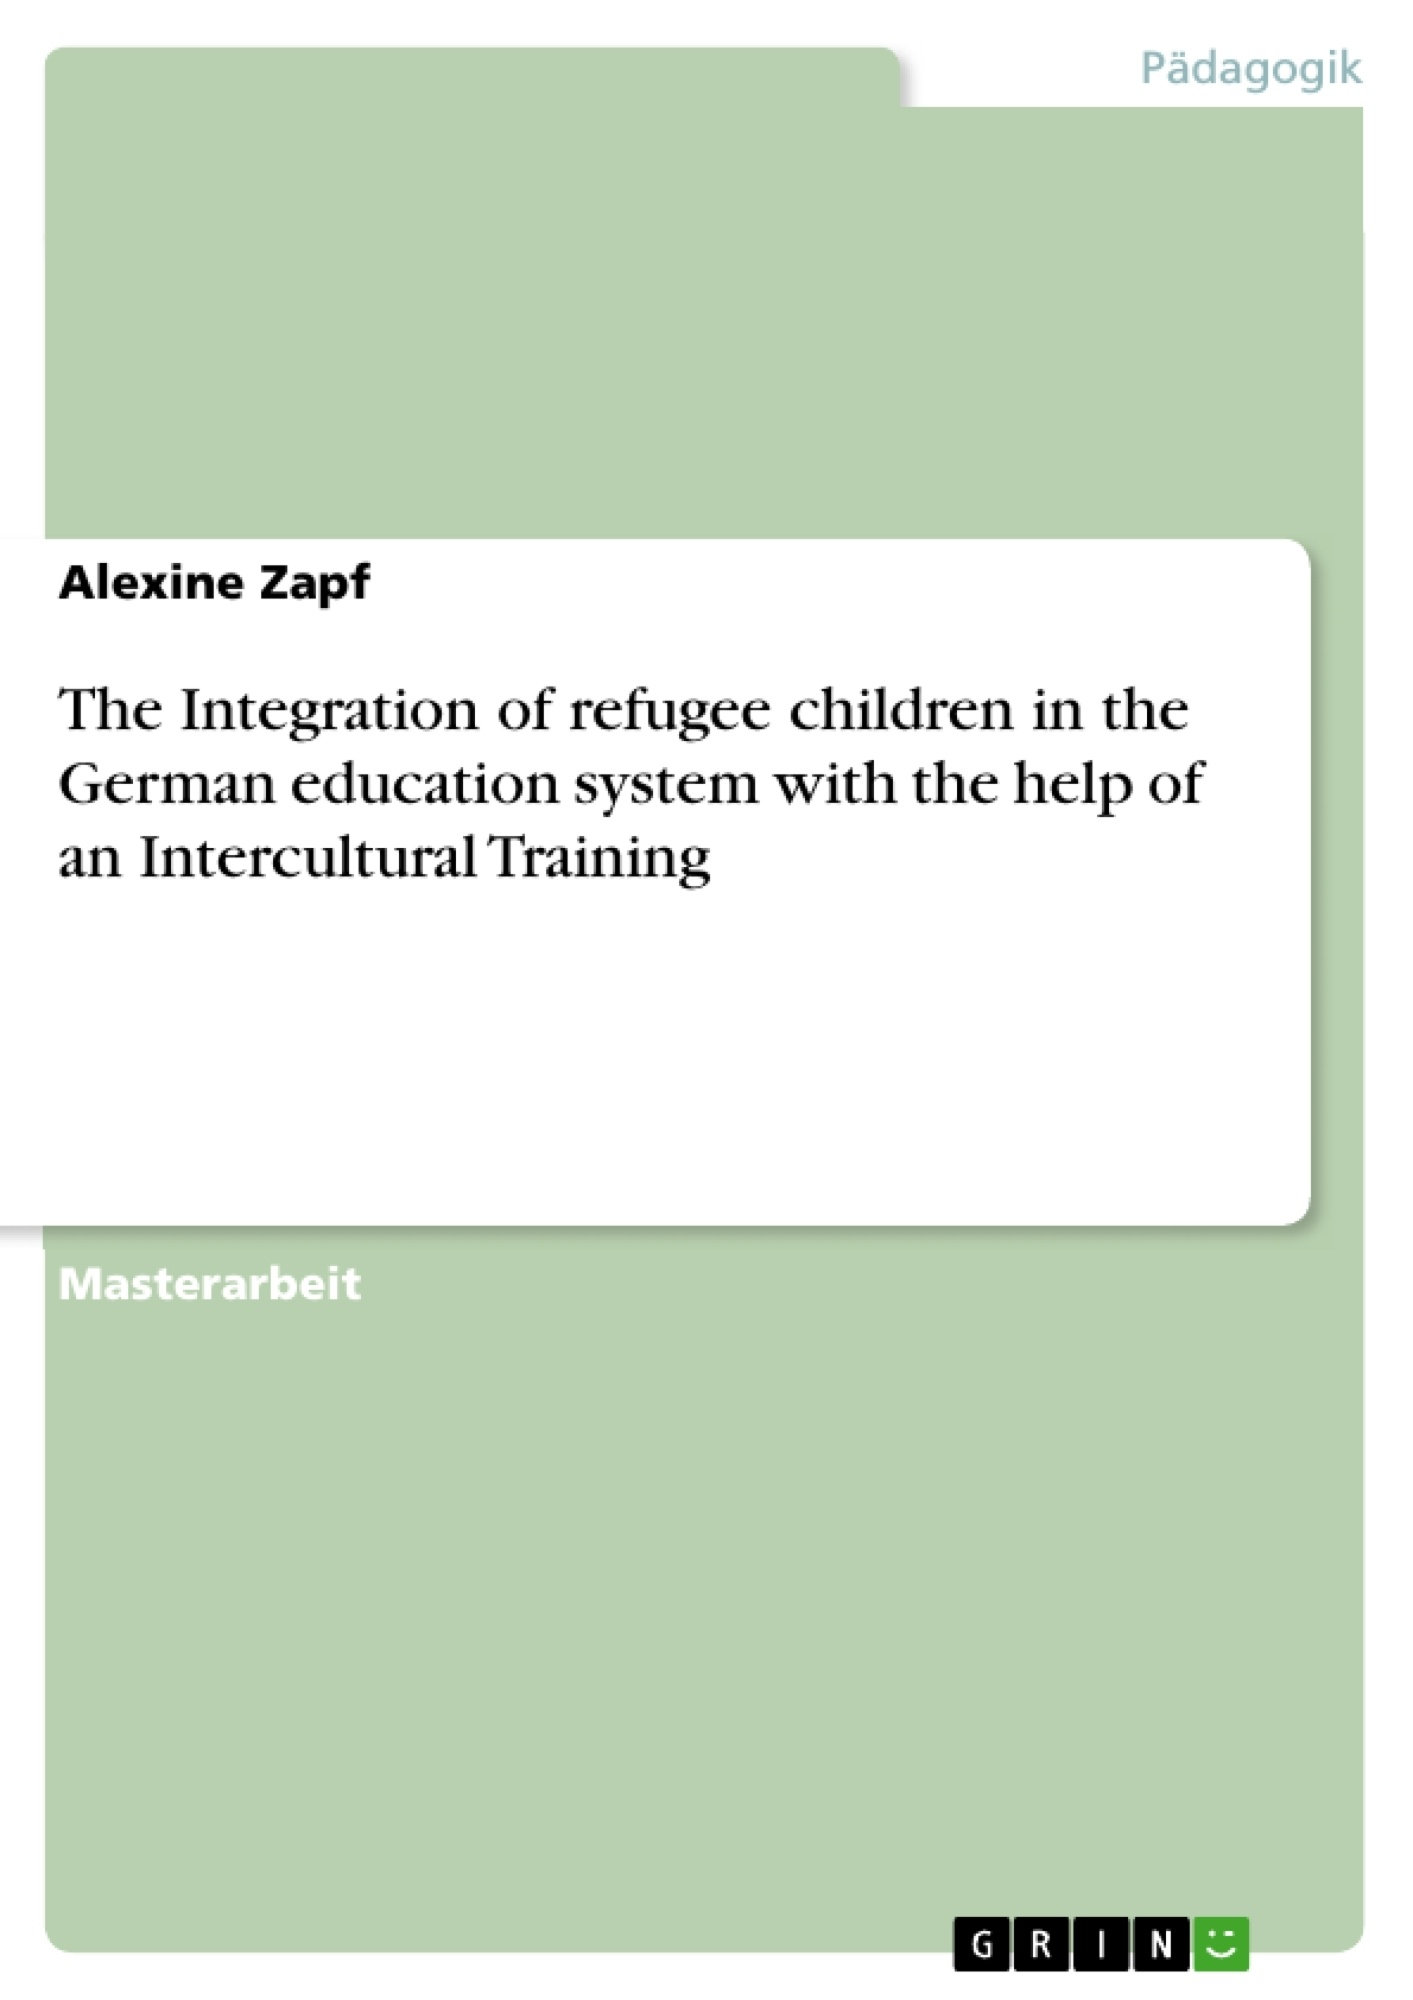 Titel: The Integration of refugee children in the German education system with the help of an Intercultural Training